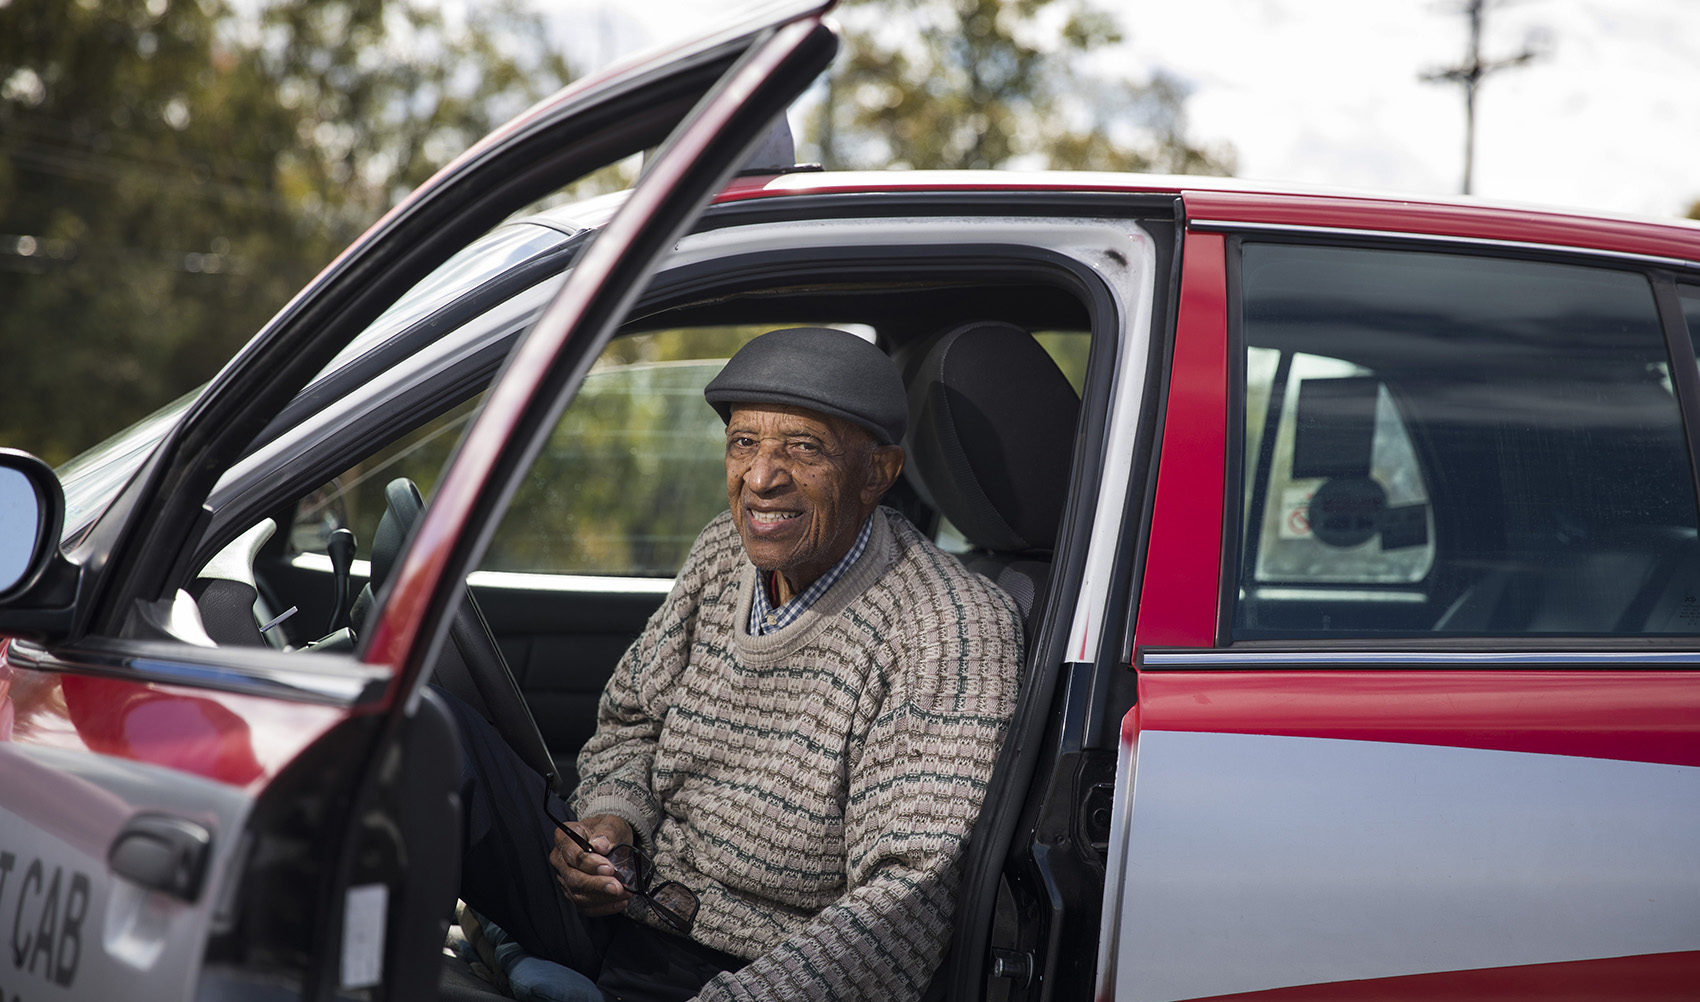 In The Era Of Uber And Lyft, These Long-Time D.C. Cabbies Drive On ...